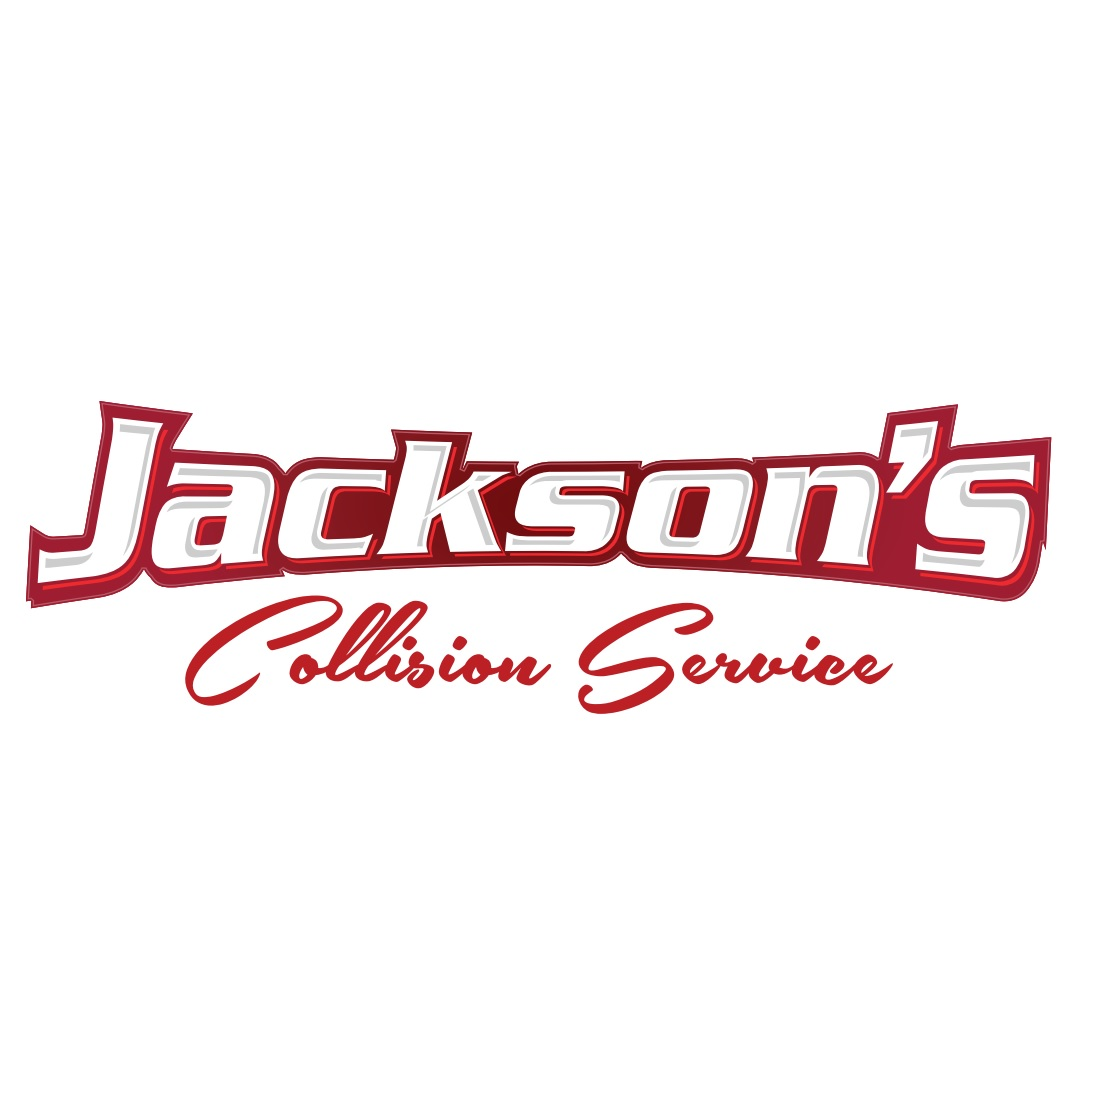 Jacksons Collision Service